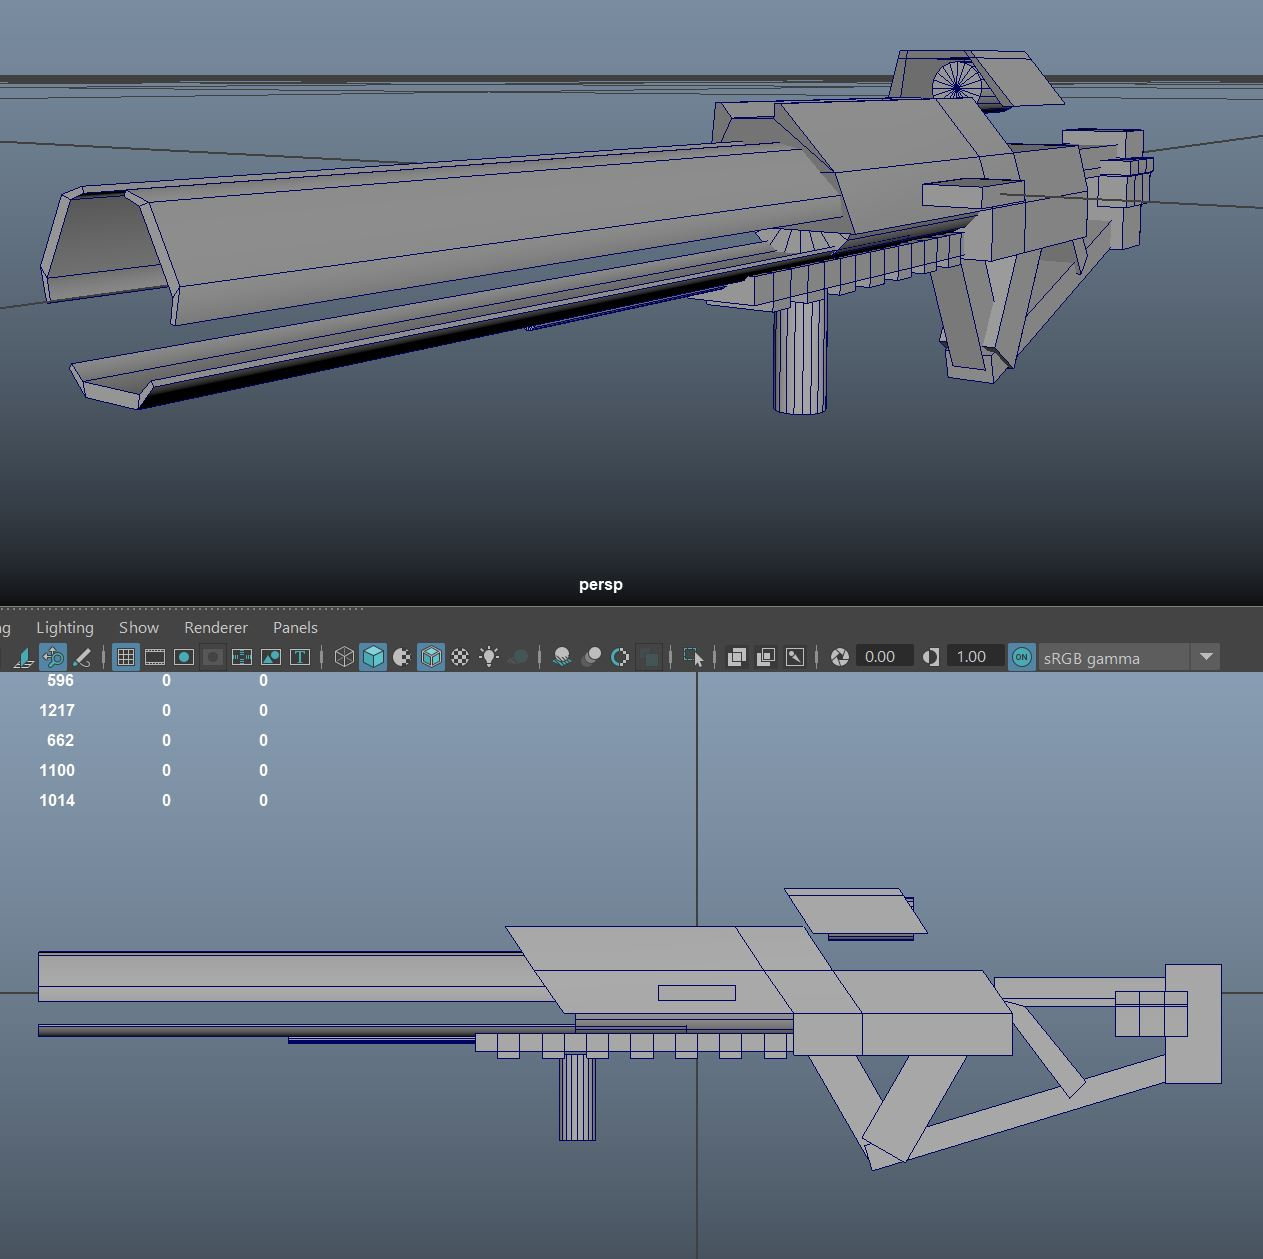 Three D Weapon - Gauss Rifle